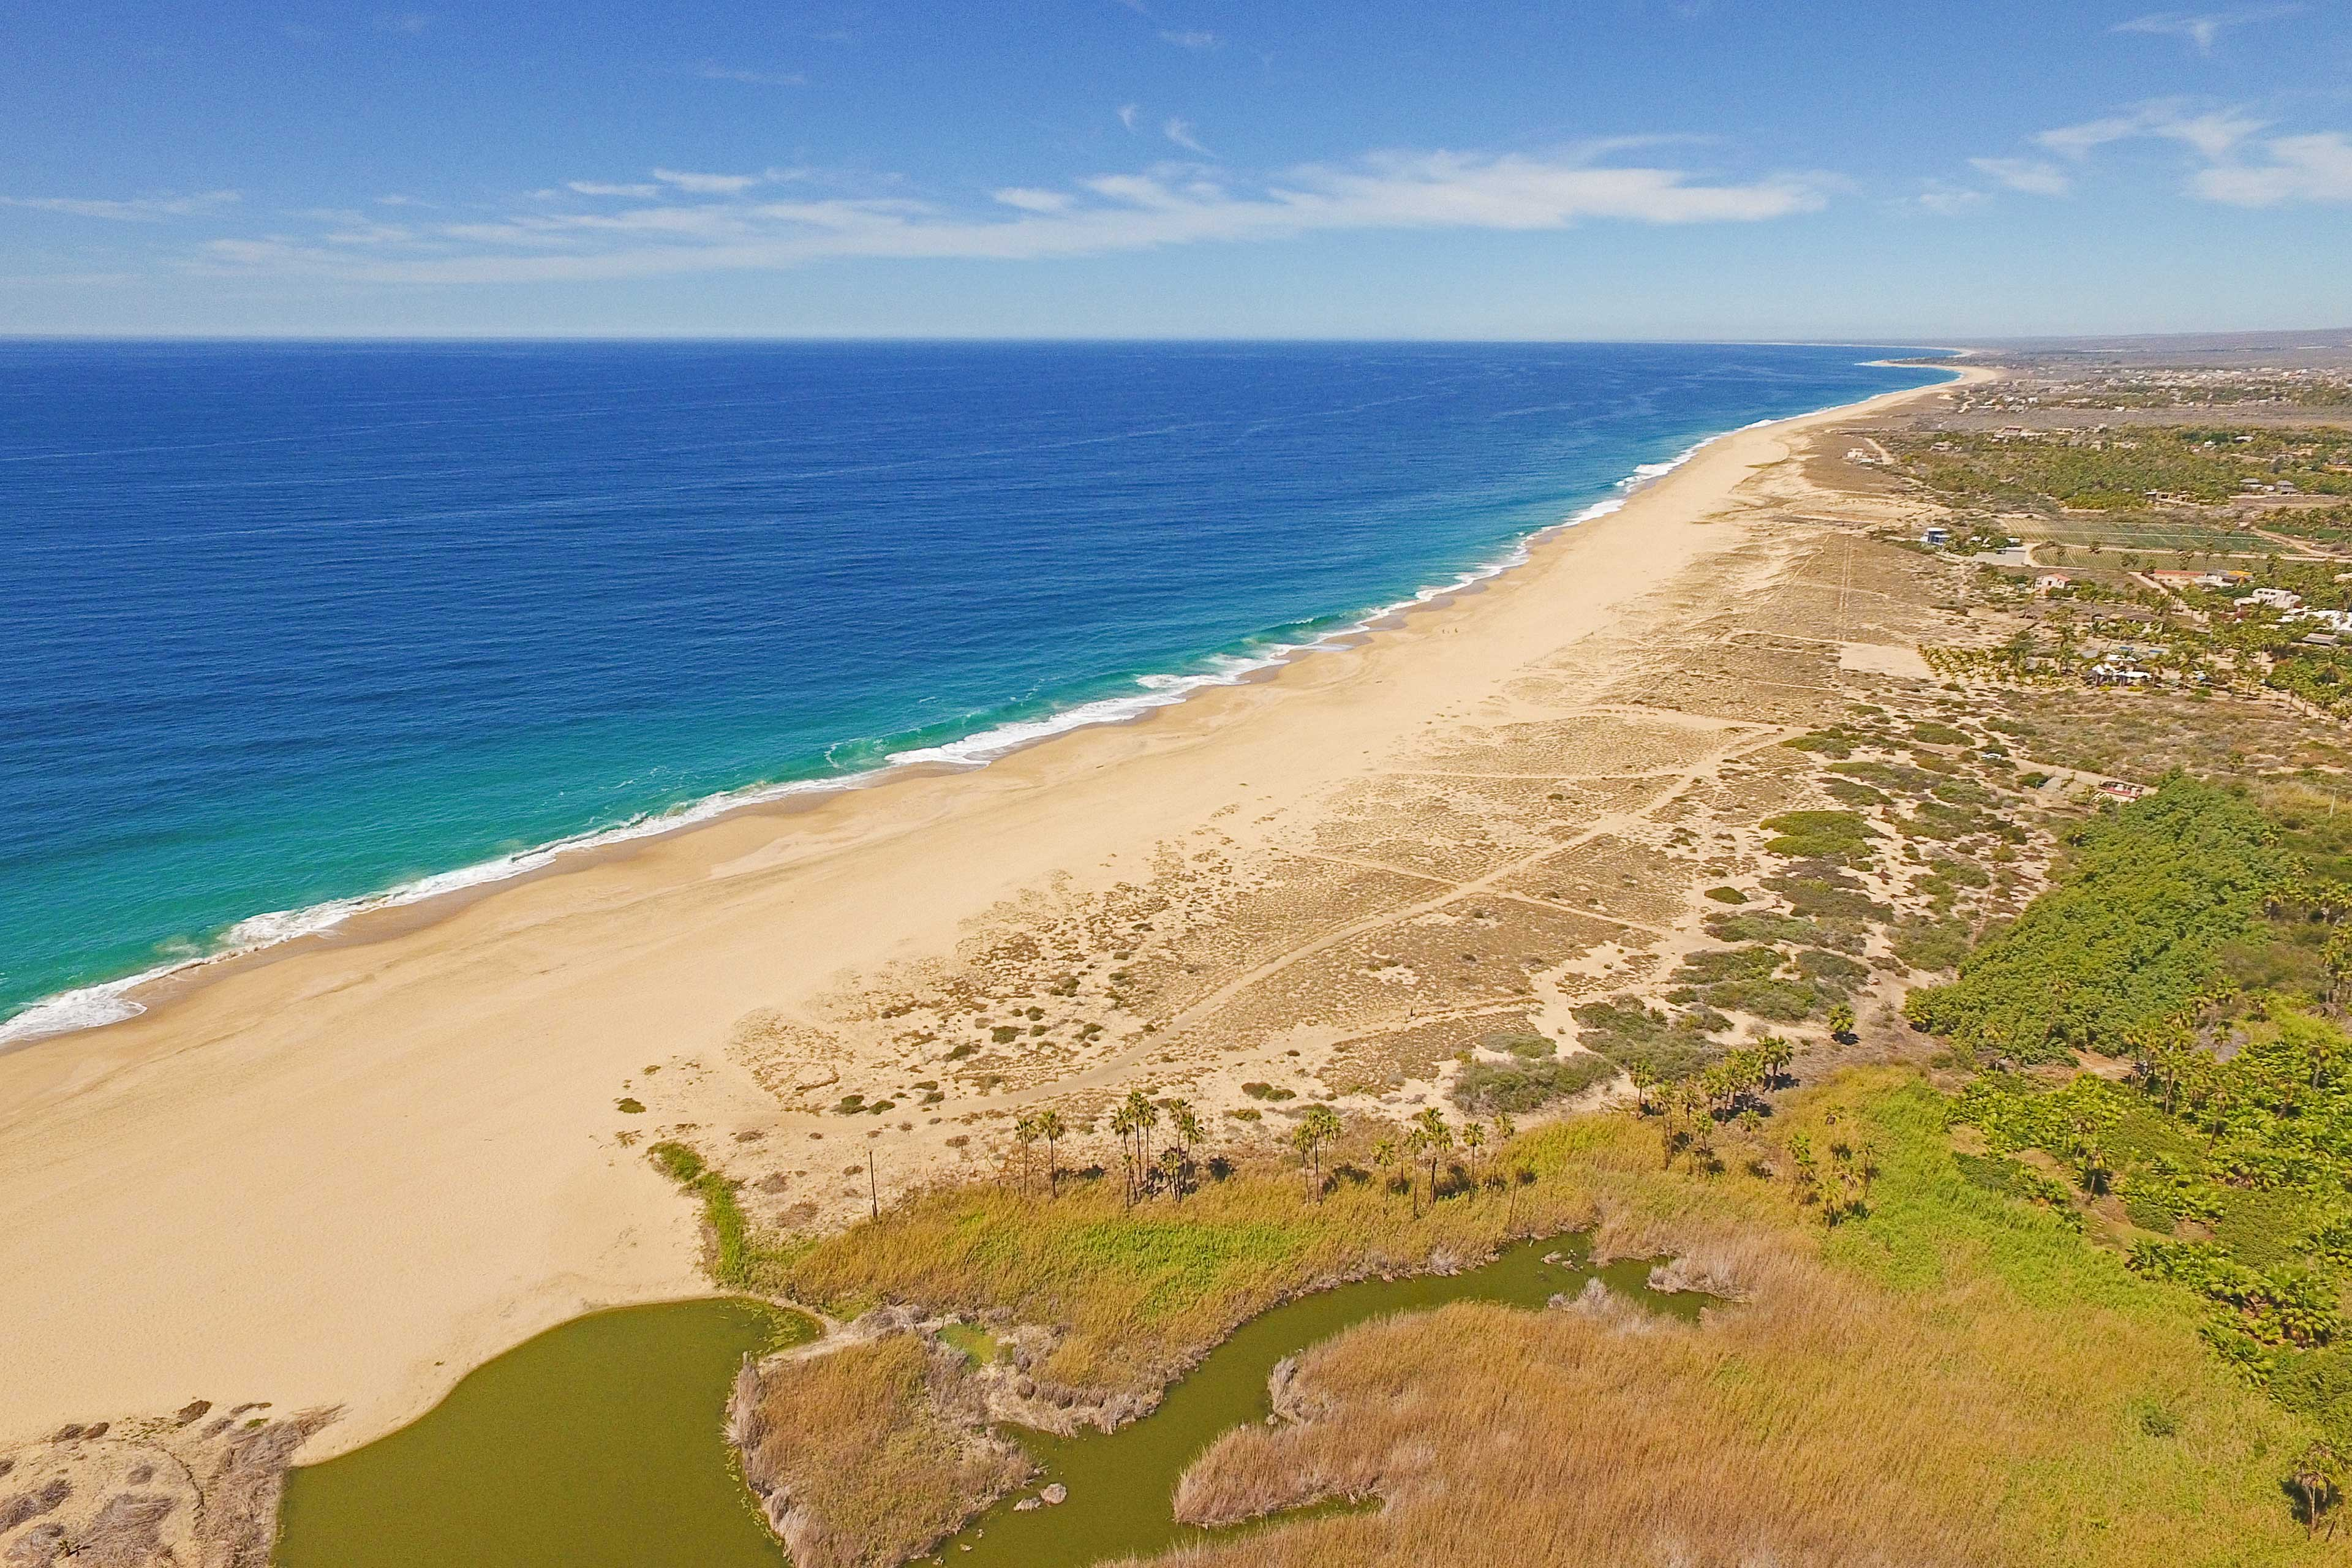 Book this fabulous vacation rental for the ultimate Todos Santos getaway!